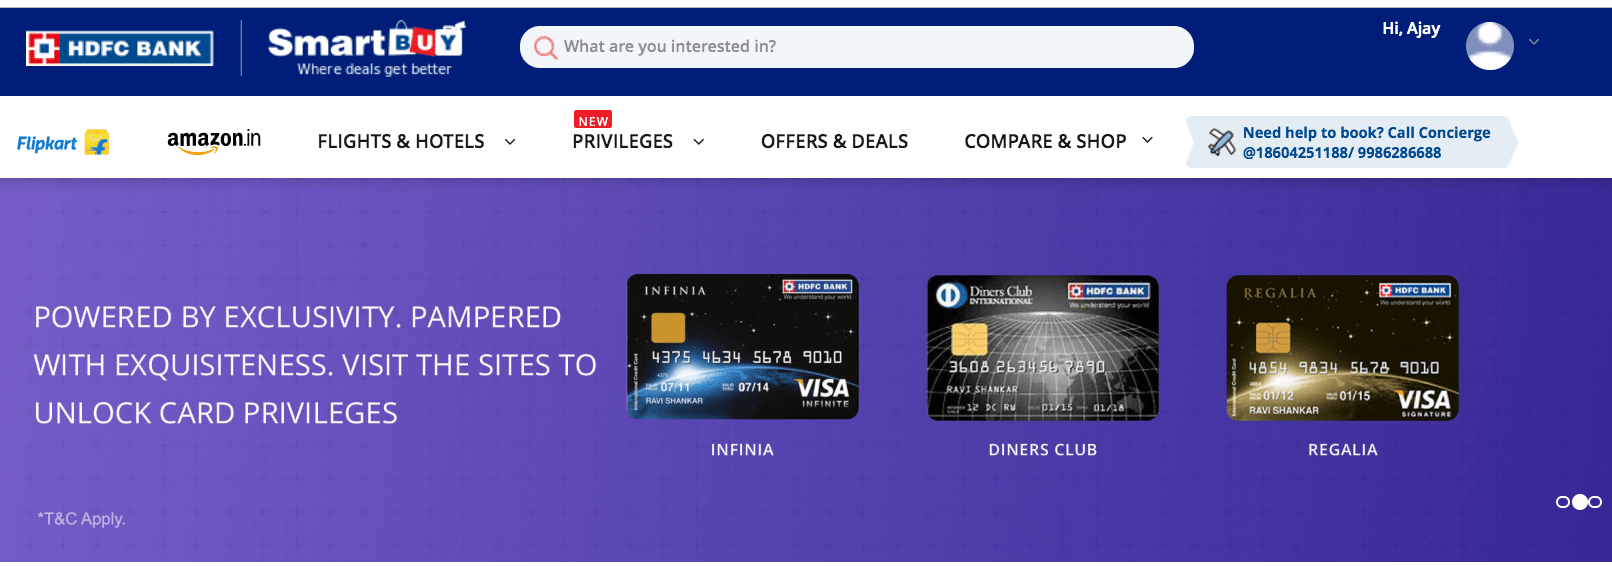 Black Point System In Qatar Hdfc Bank Credit Card Points Can Be Redeemed For Flights By